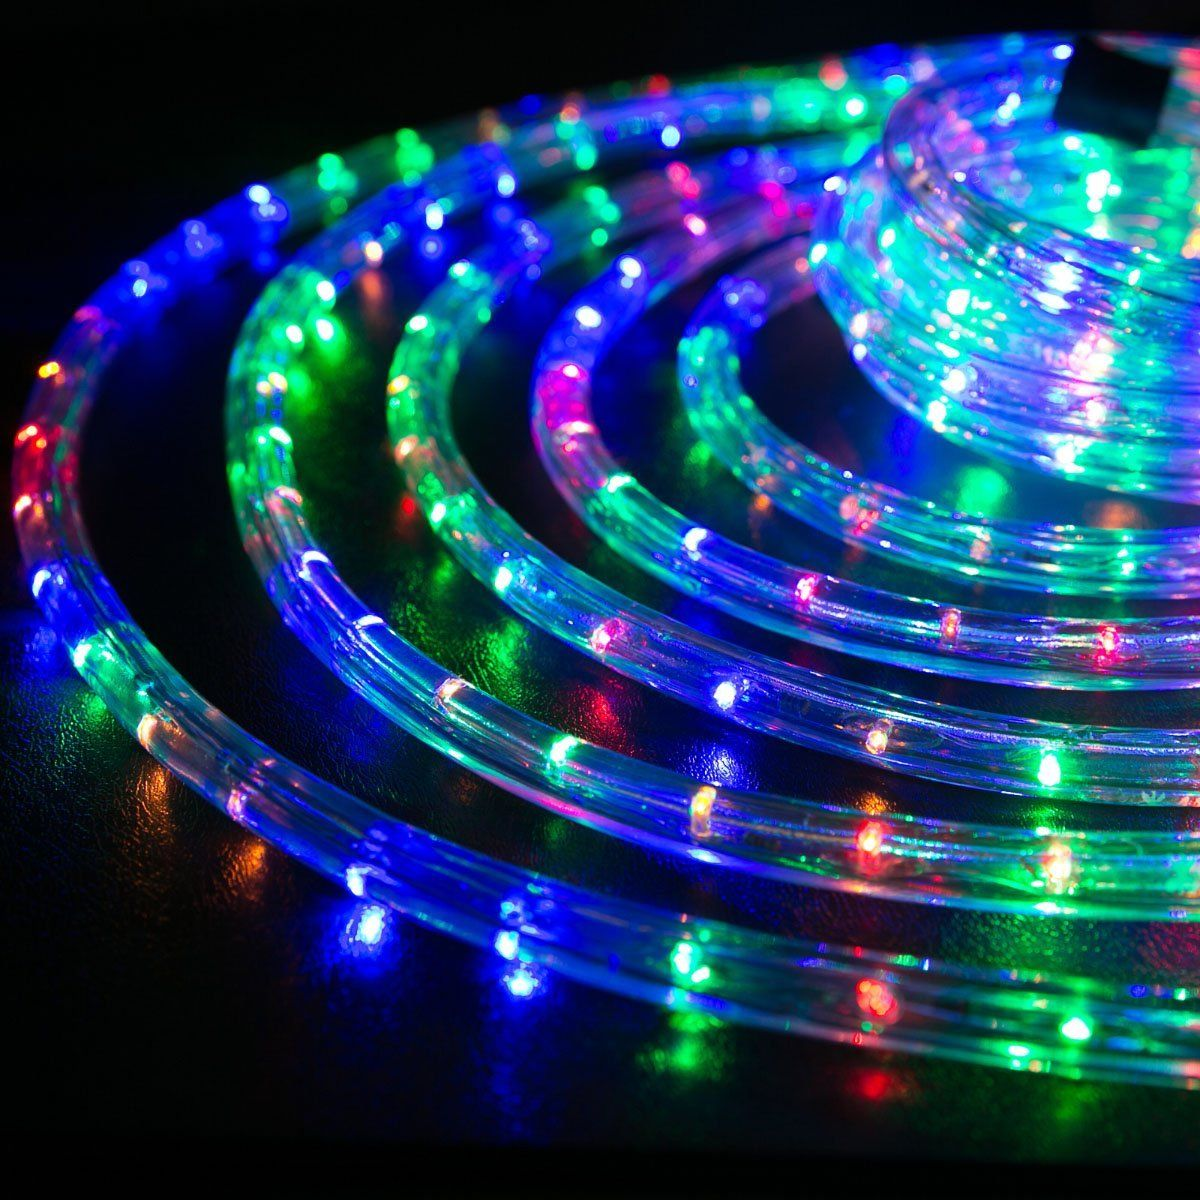 Wyzworks 100 feet 12 thick multi color rgb pre assembled led rope wyzworks 100 feet 12 thick multicolor rgb preassembled led rope lights with 10 25 50 150 option christmas holiday decoration lighting ul csa certified aloadofball Choice Image